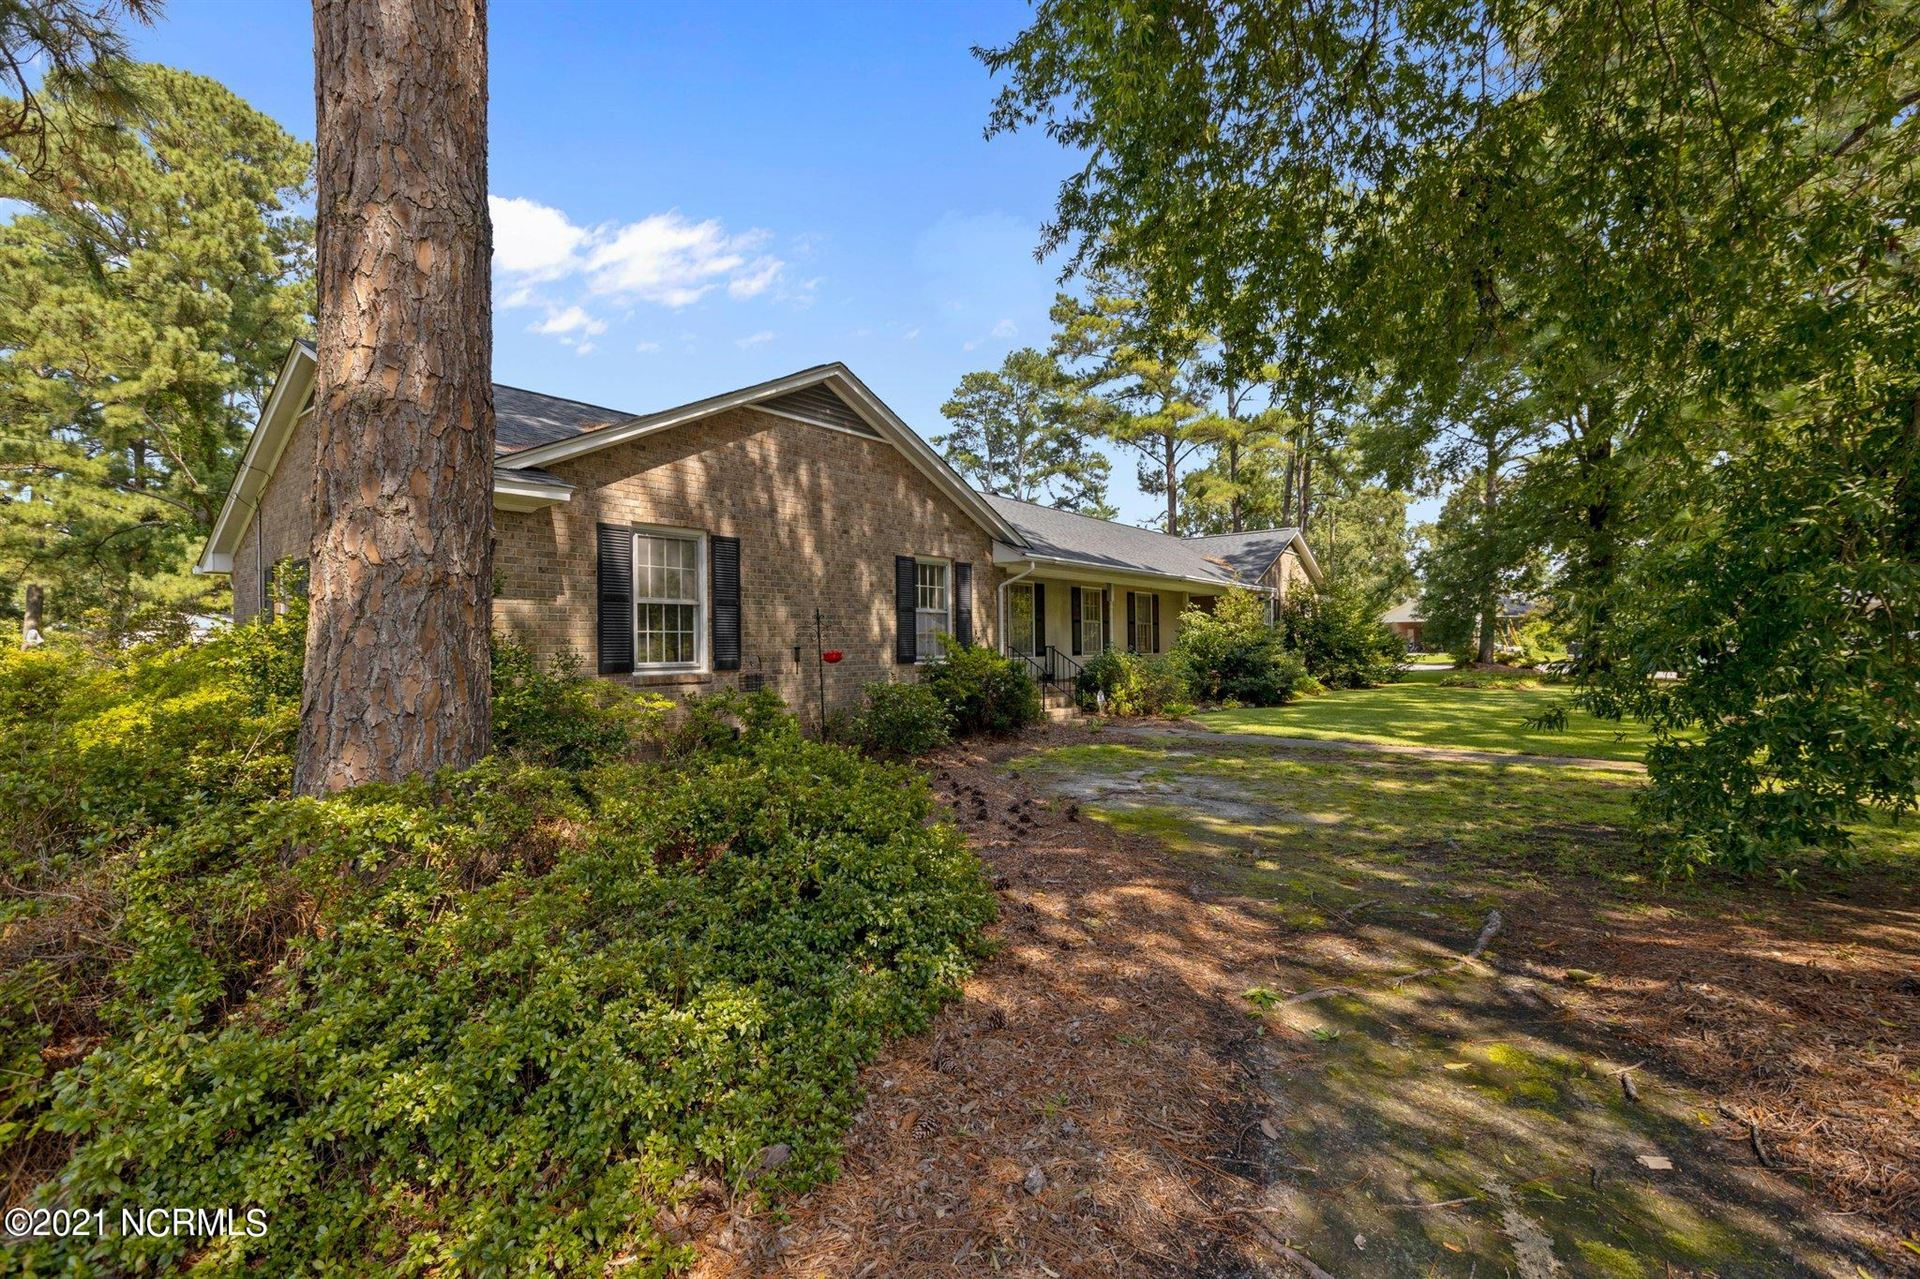 Photo of 1101 Oakview Drive, Greenville, NC 27858 (MLS # 100285682)